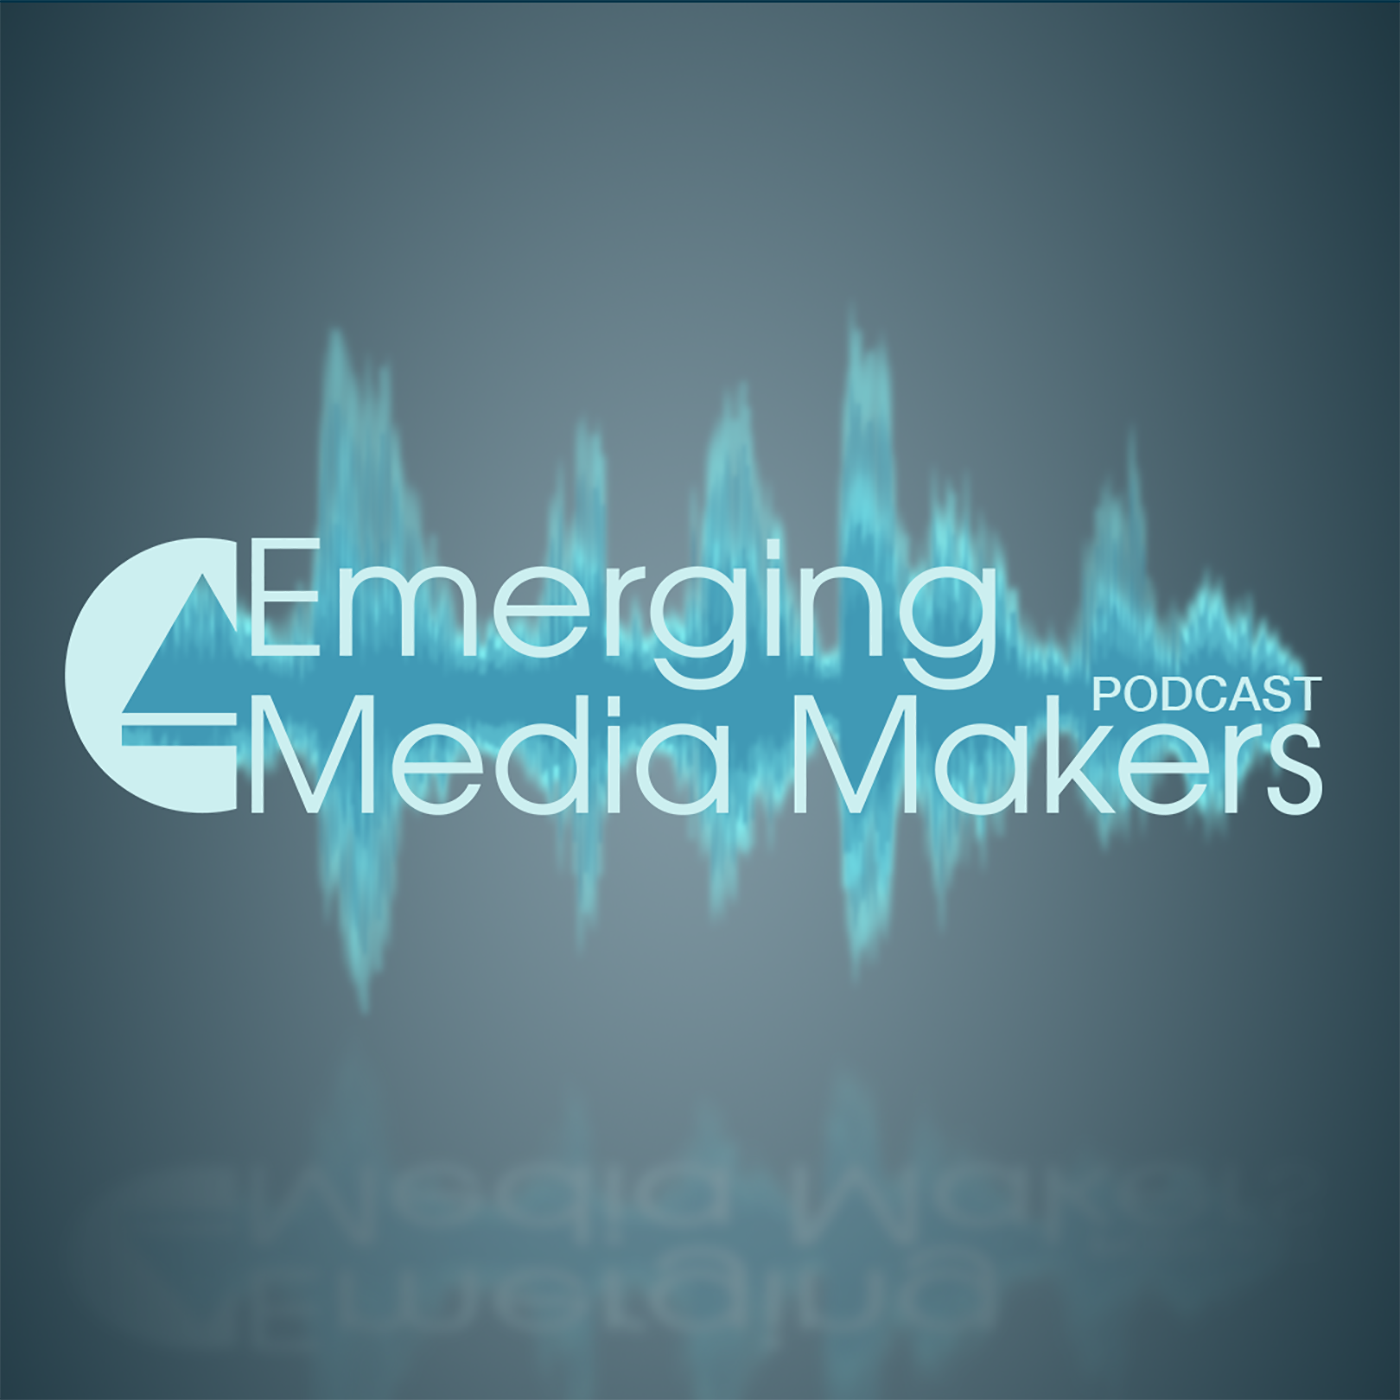 Emerging Media Makers